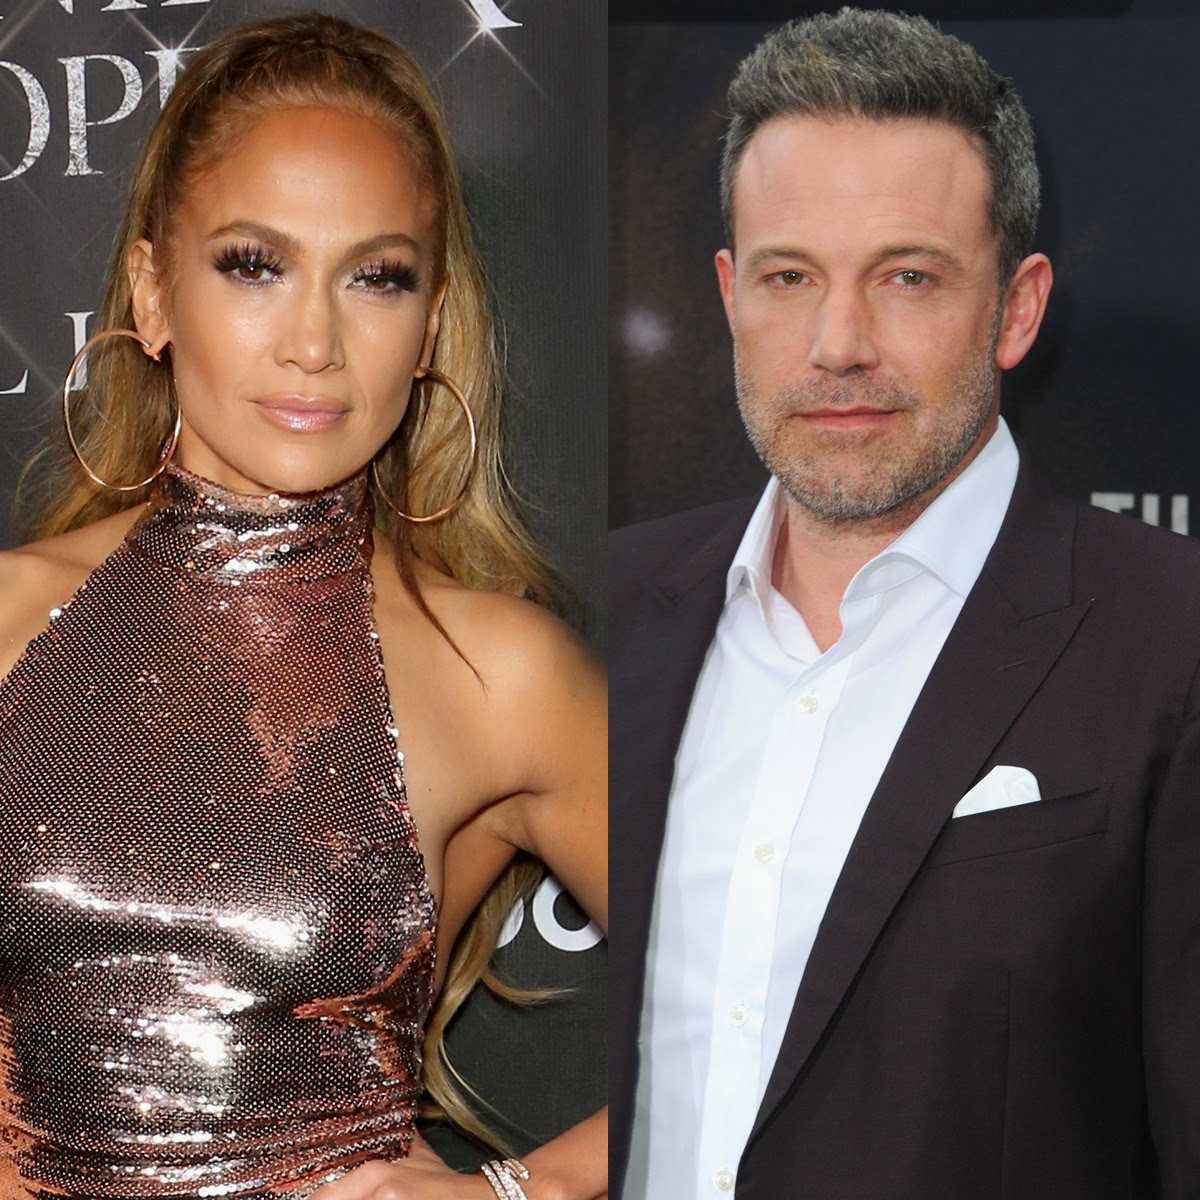 Jennifer Lopez Steps Out in What Looks Like Ben Affleck's Shirt